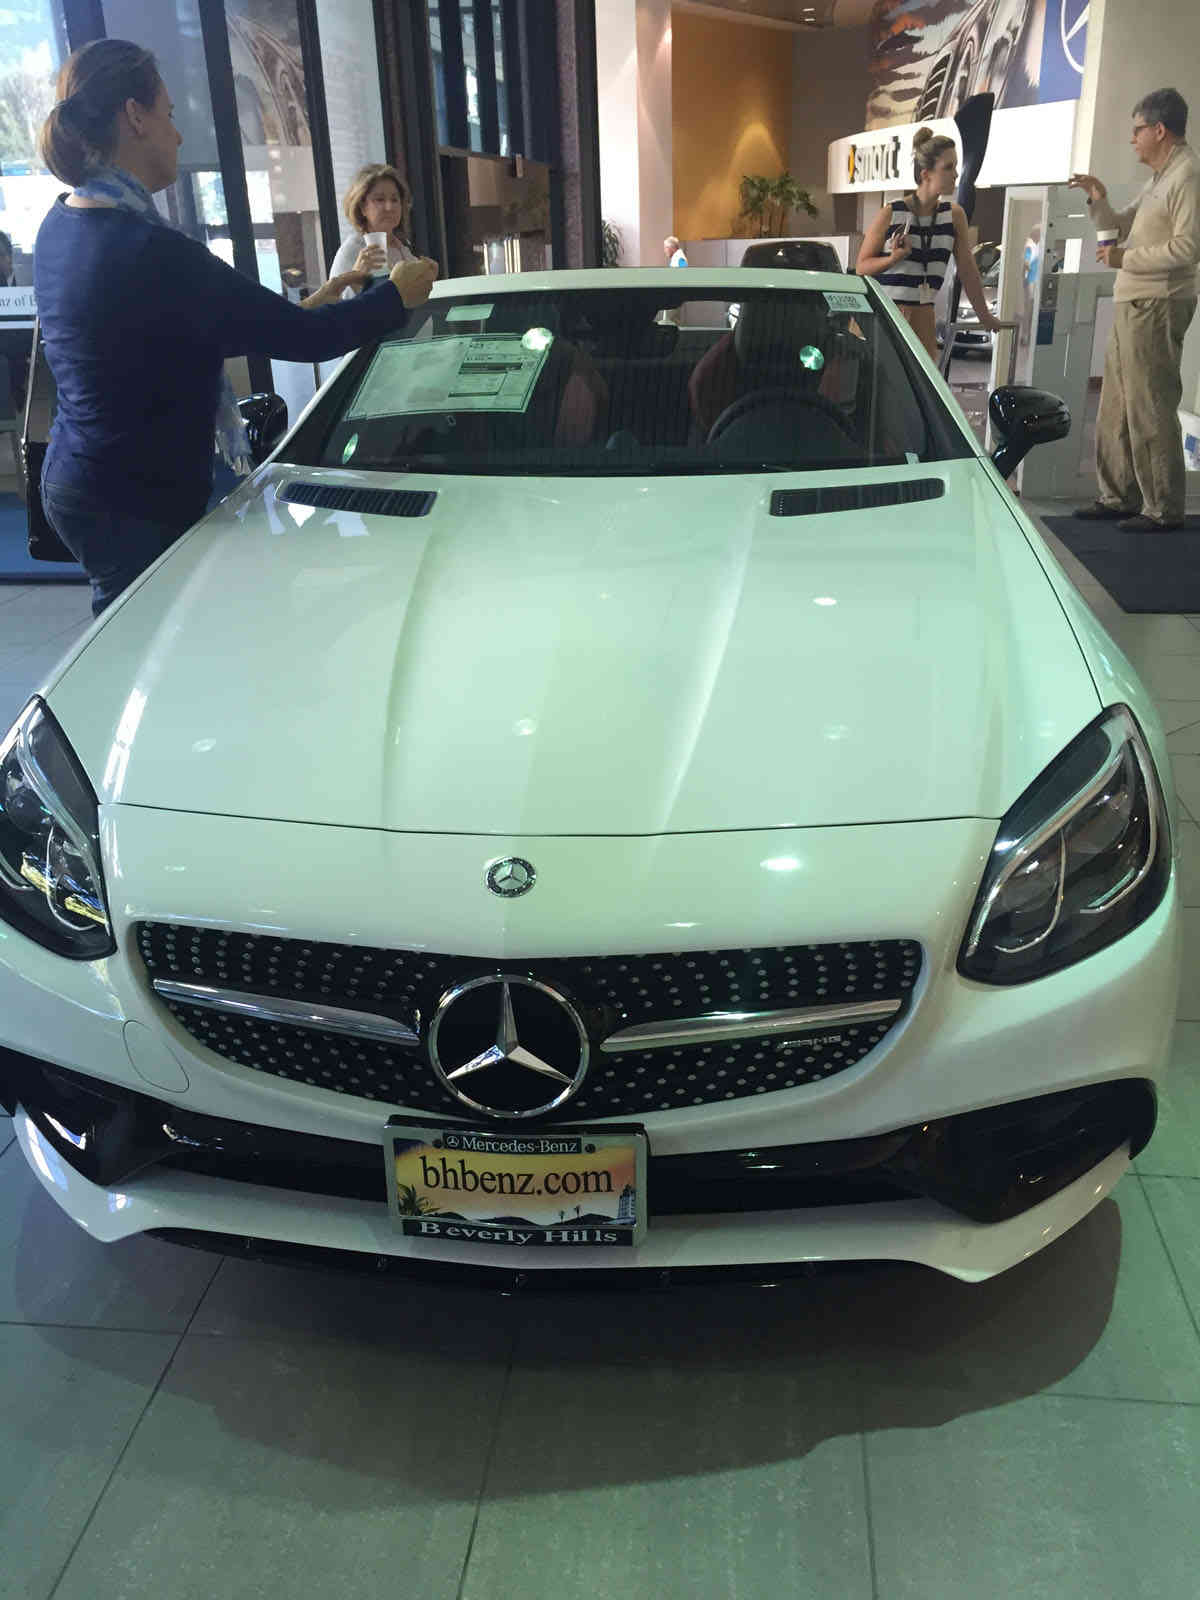 ... Beverly Hills Mercedes Clearly In The Lead! Special Thanks To Evonne  Ghoul, Public Relations Manager, Ron Robertson, Master Certified AMG  Expert, ...